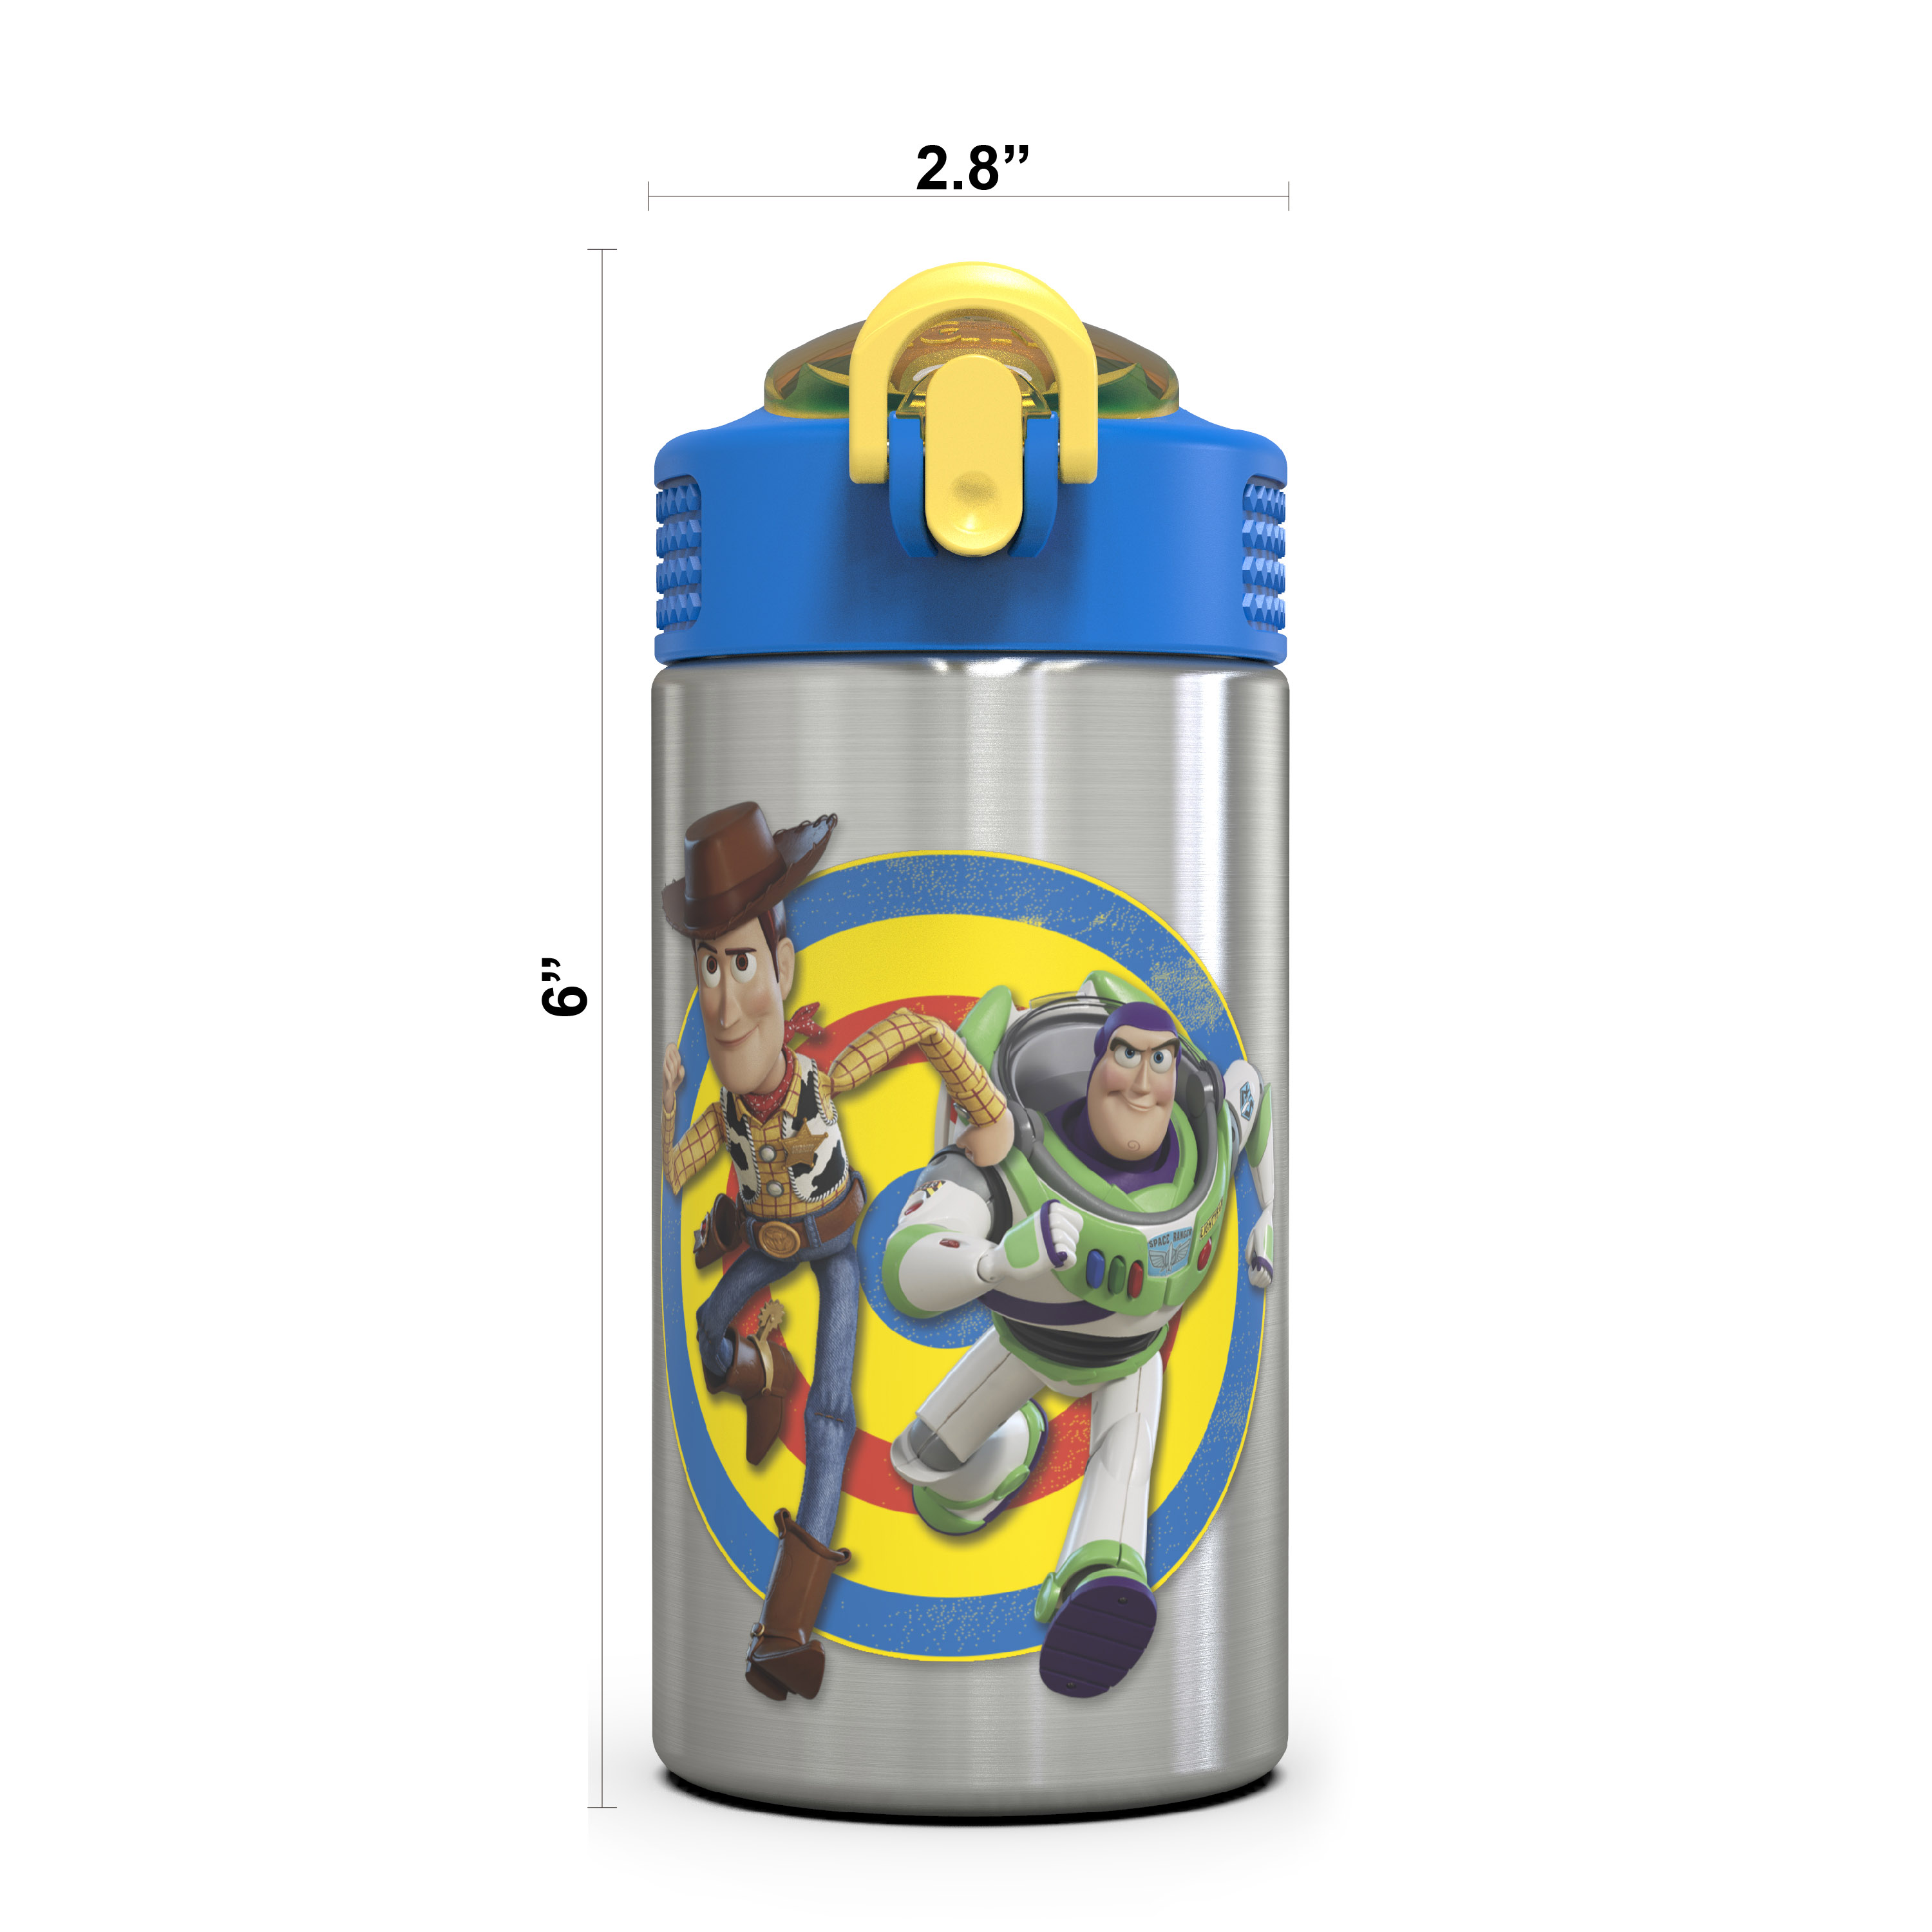 Toy Story 4 15.5 ounce Water Bottle, Buzz & Woody slideshow image 11